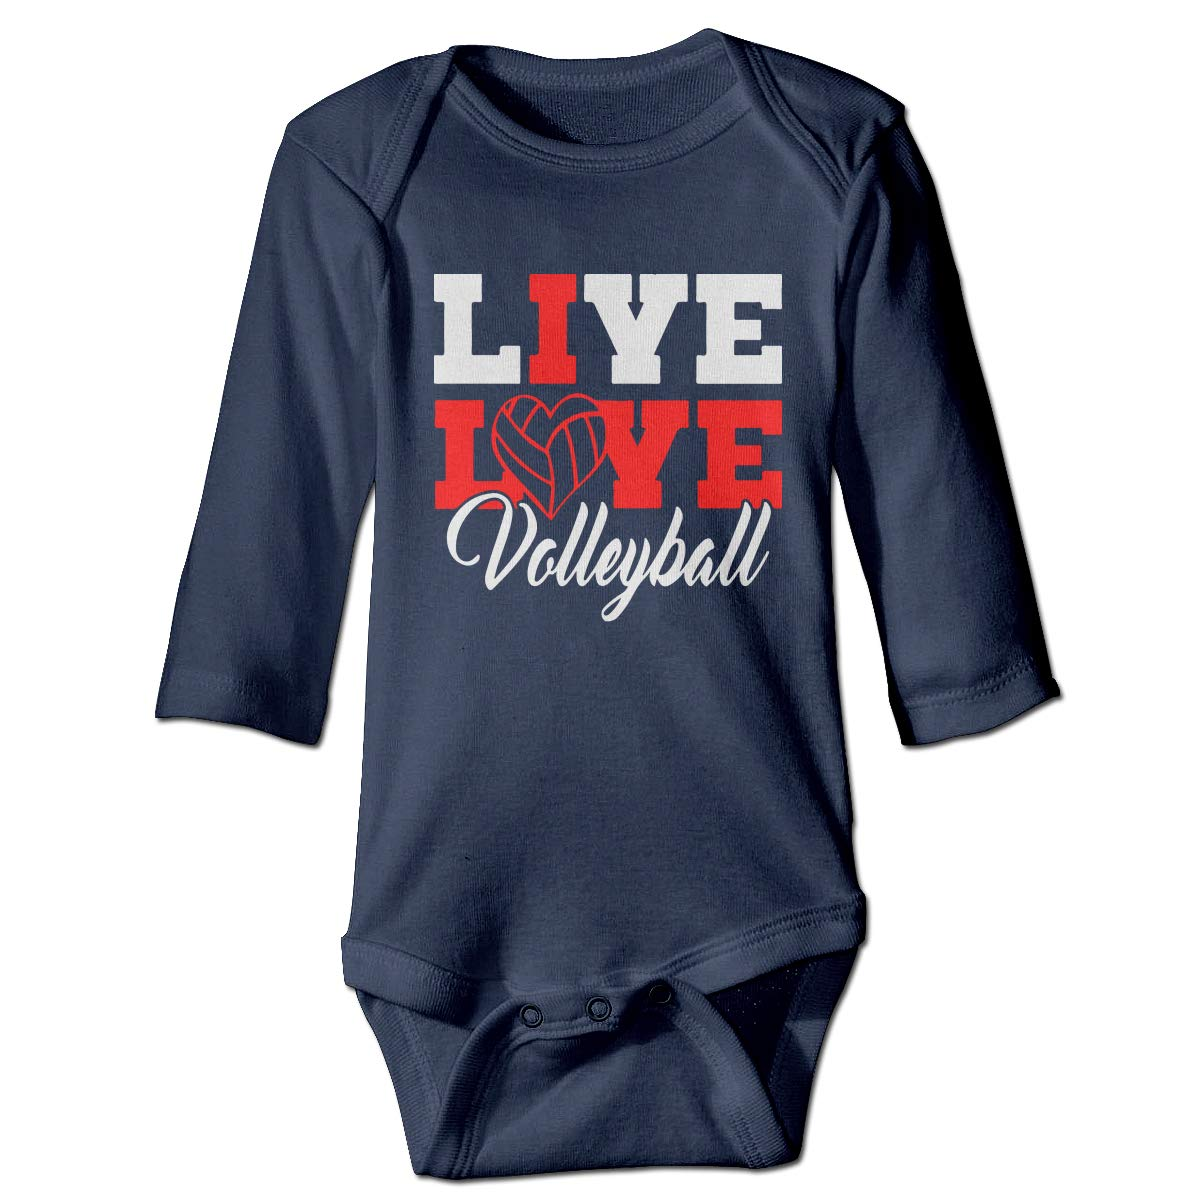 Just Born Baby Boys Girls Romper Bodysuit Infant Live Love Volleyball1 Long Sleeve Funny Climb Romper